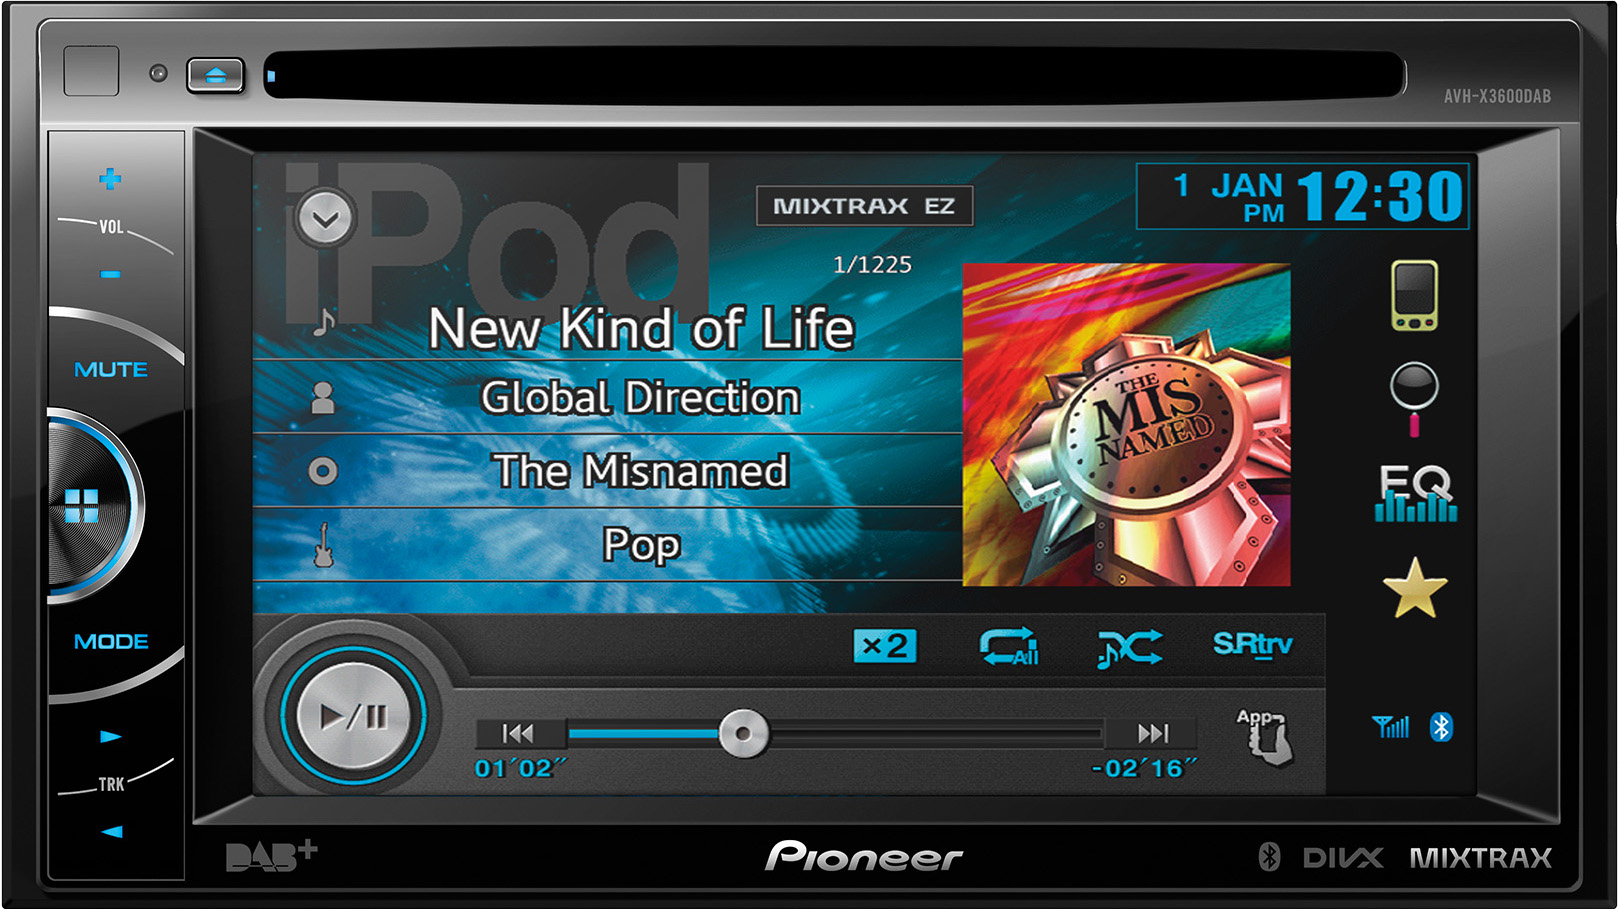 AVH-X3600DAB Double Din AV station built in DAB radio and Bl